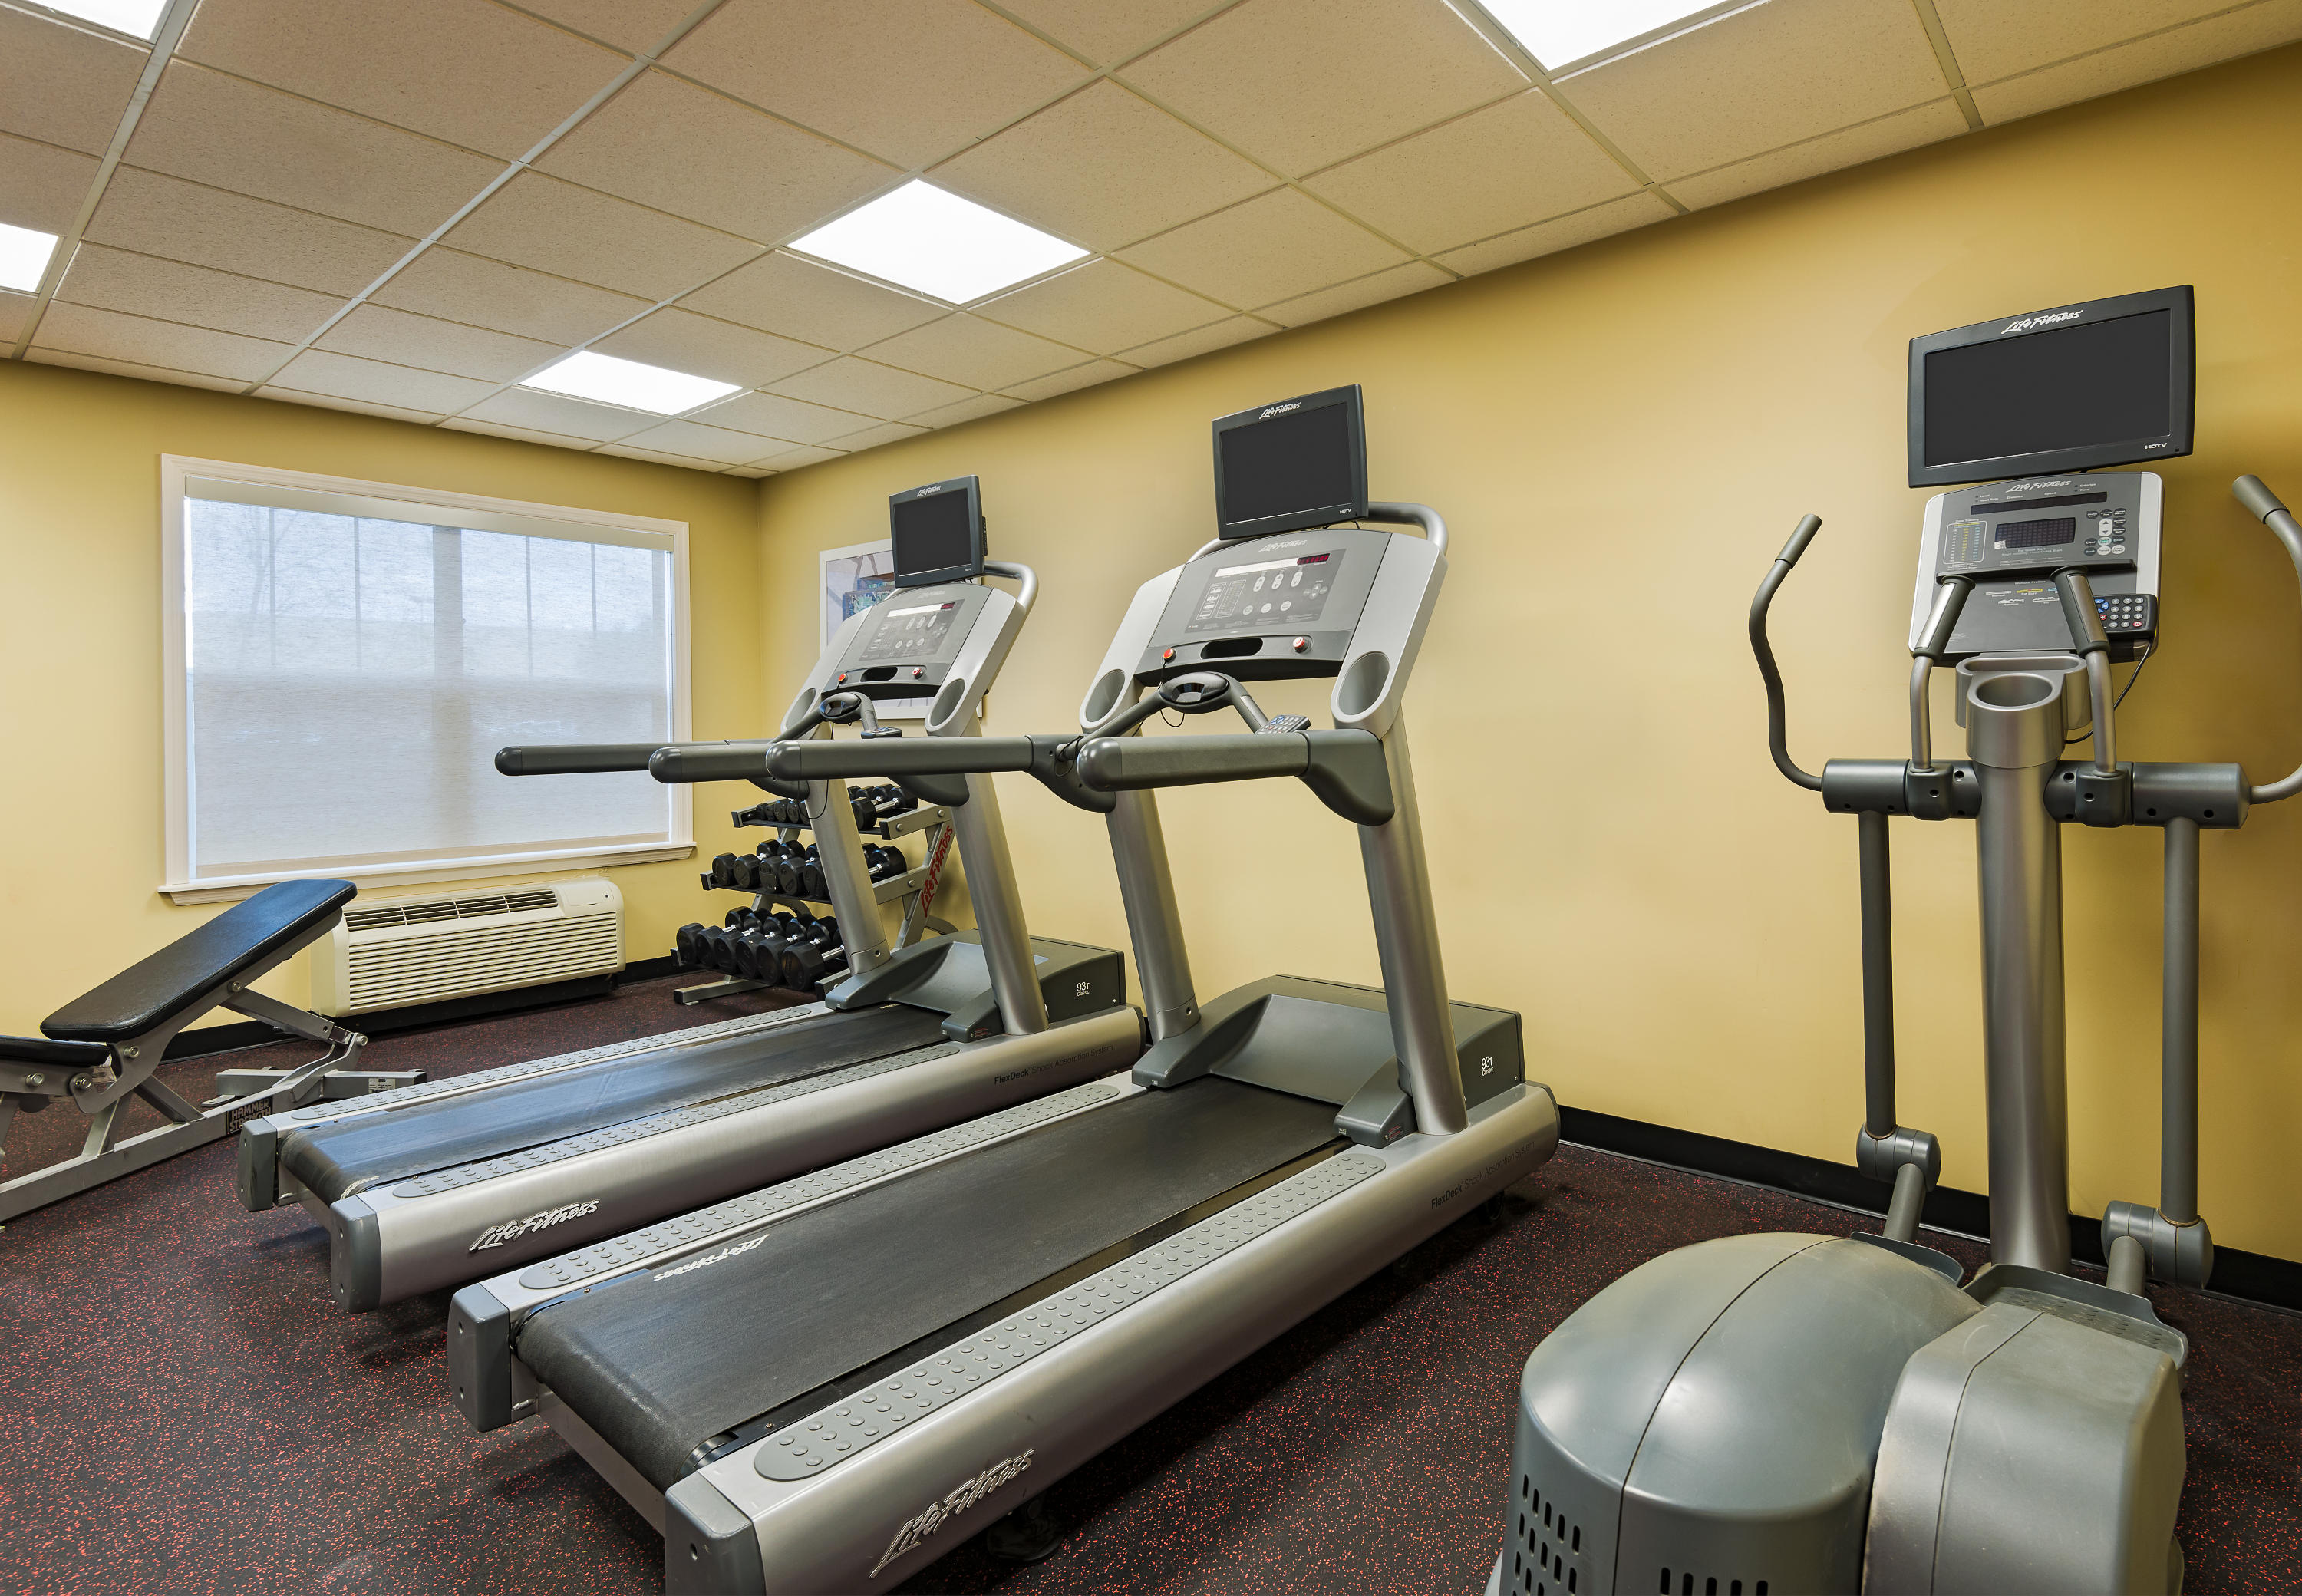 TownePlace Suites by Marriott Pensacola image 2